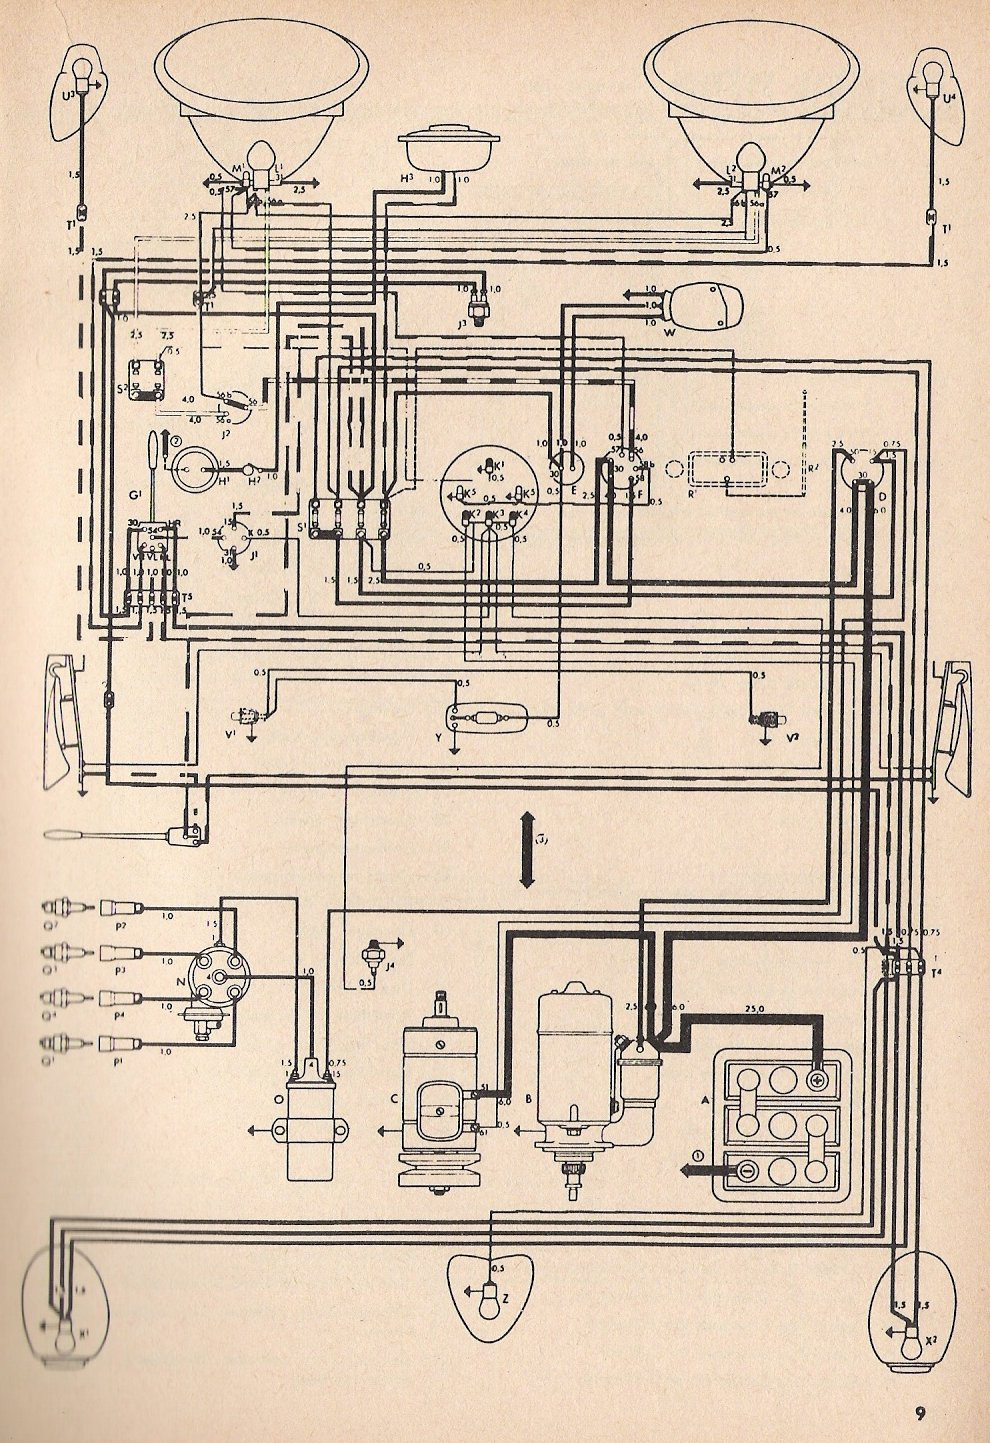 Type 1 Wiring Diagrams Cooling Fan Diagram On Basic Alternator